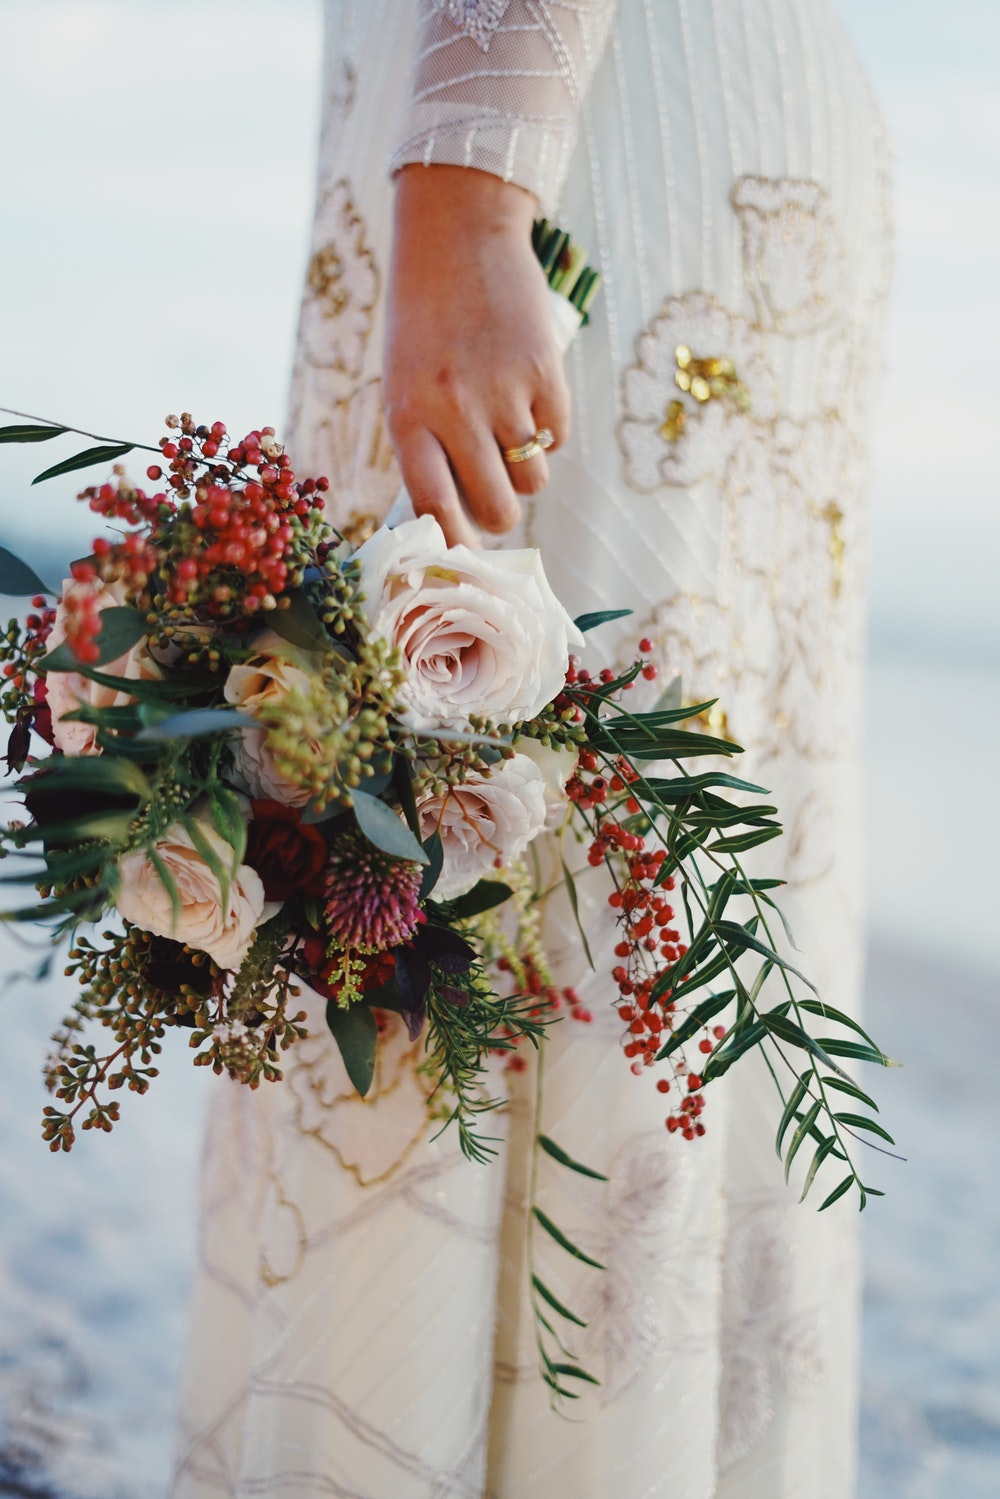 Inspo for Hosting an Intimate Wedding